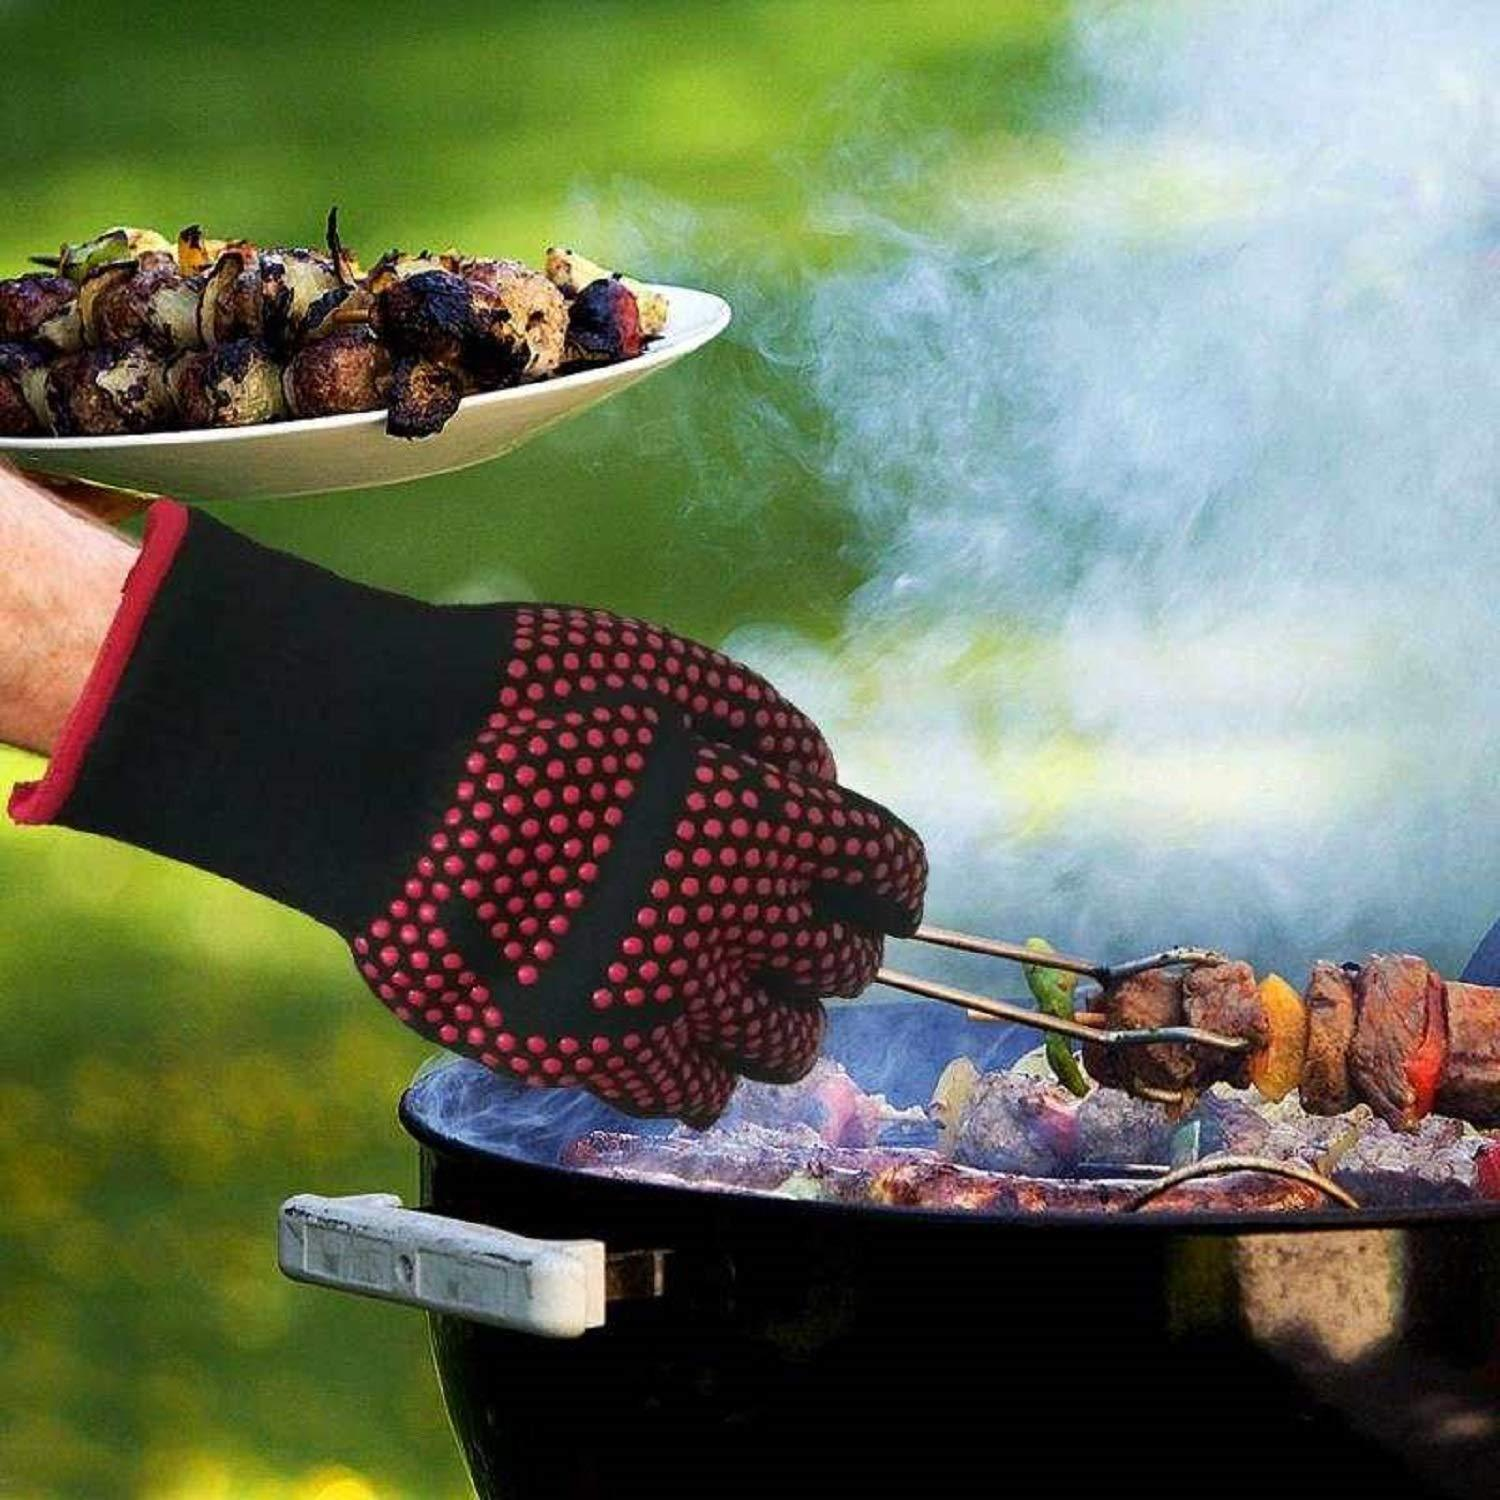 Silicon BBQ Fireproof Gloves(932℉ Extreme Heat Resistant) - Buy 3 Free Shipping